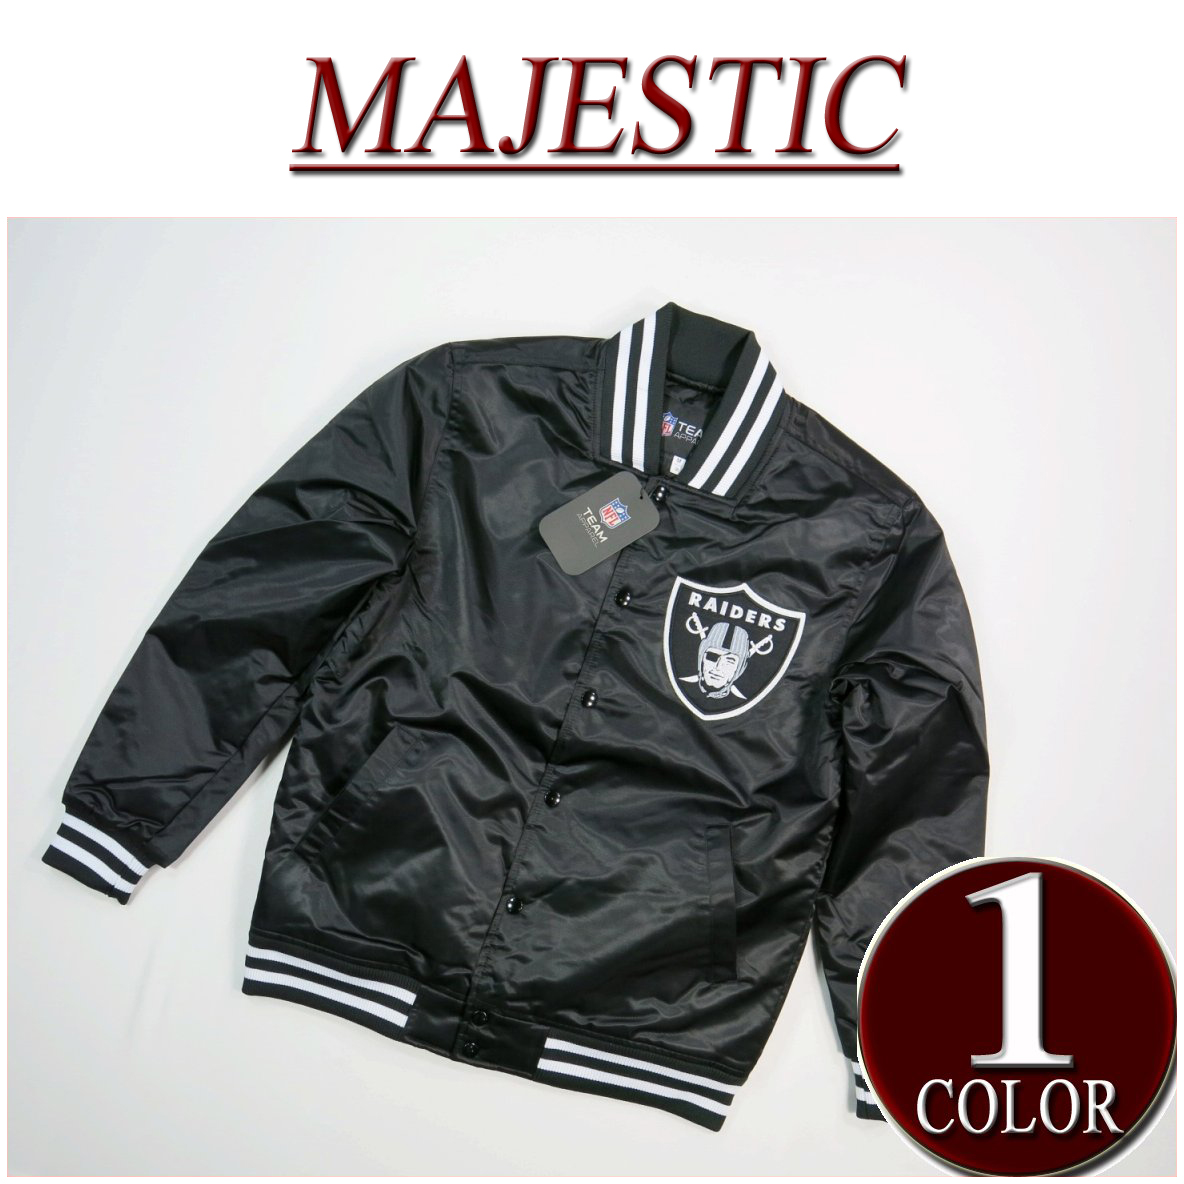 lowest price 0a63b 9390d Stadium jacket with iz831 new article MAJESTIC NFL Oakland Raiders nylon  satin award jacket OLR0003 メンズマジェスティック NFL OFFICIAL WEAR emblem